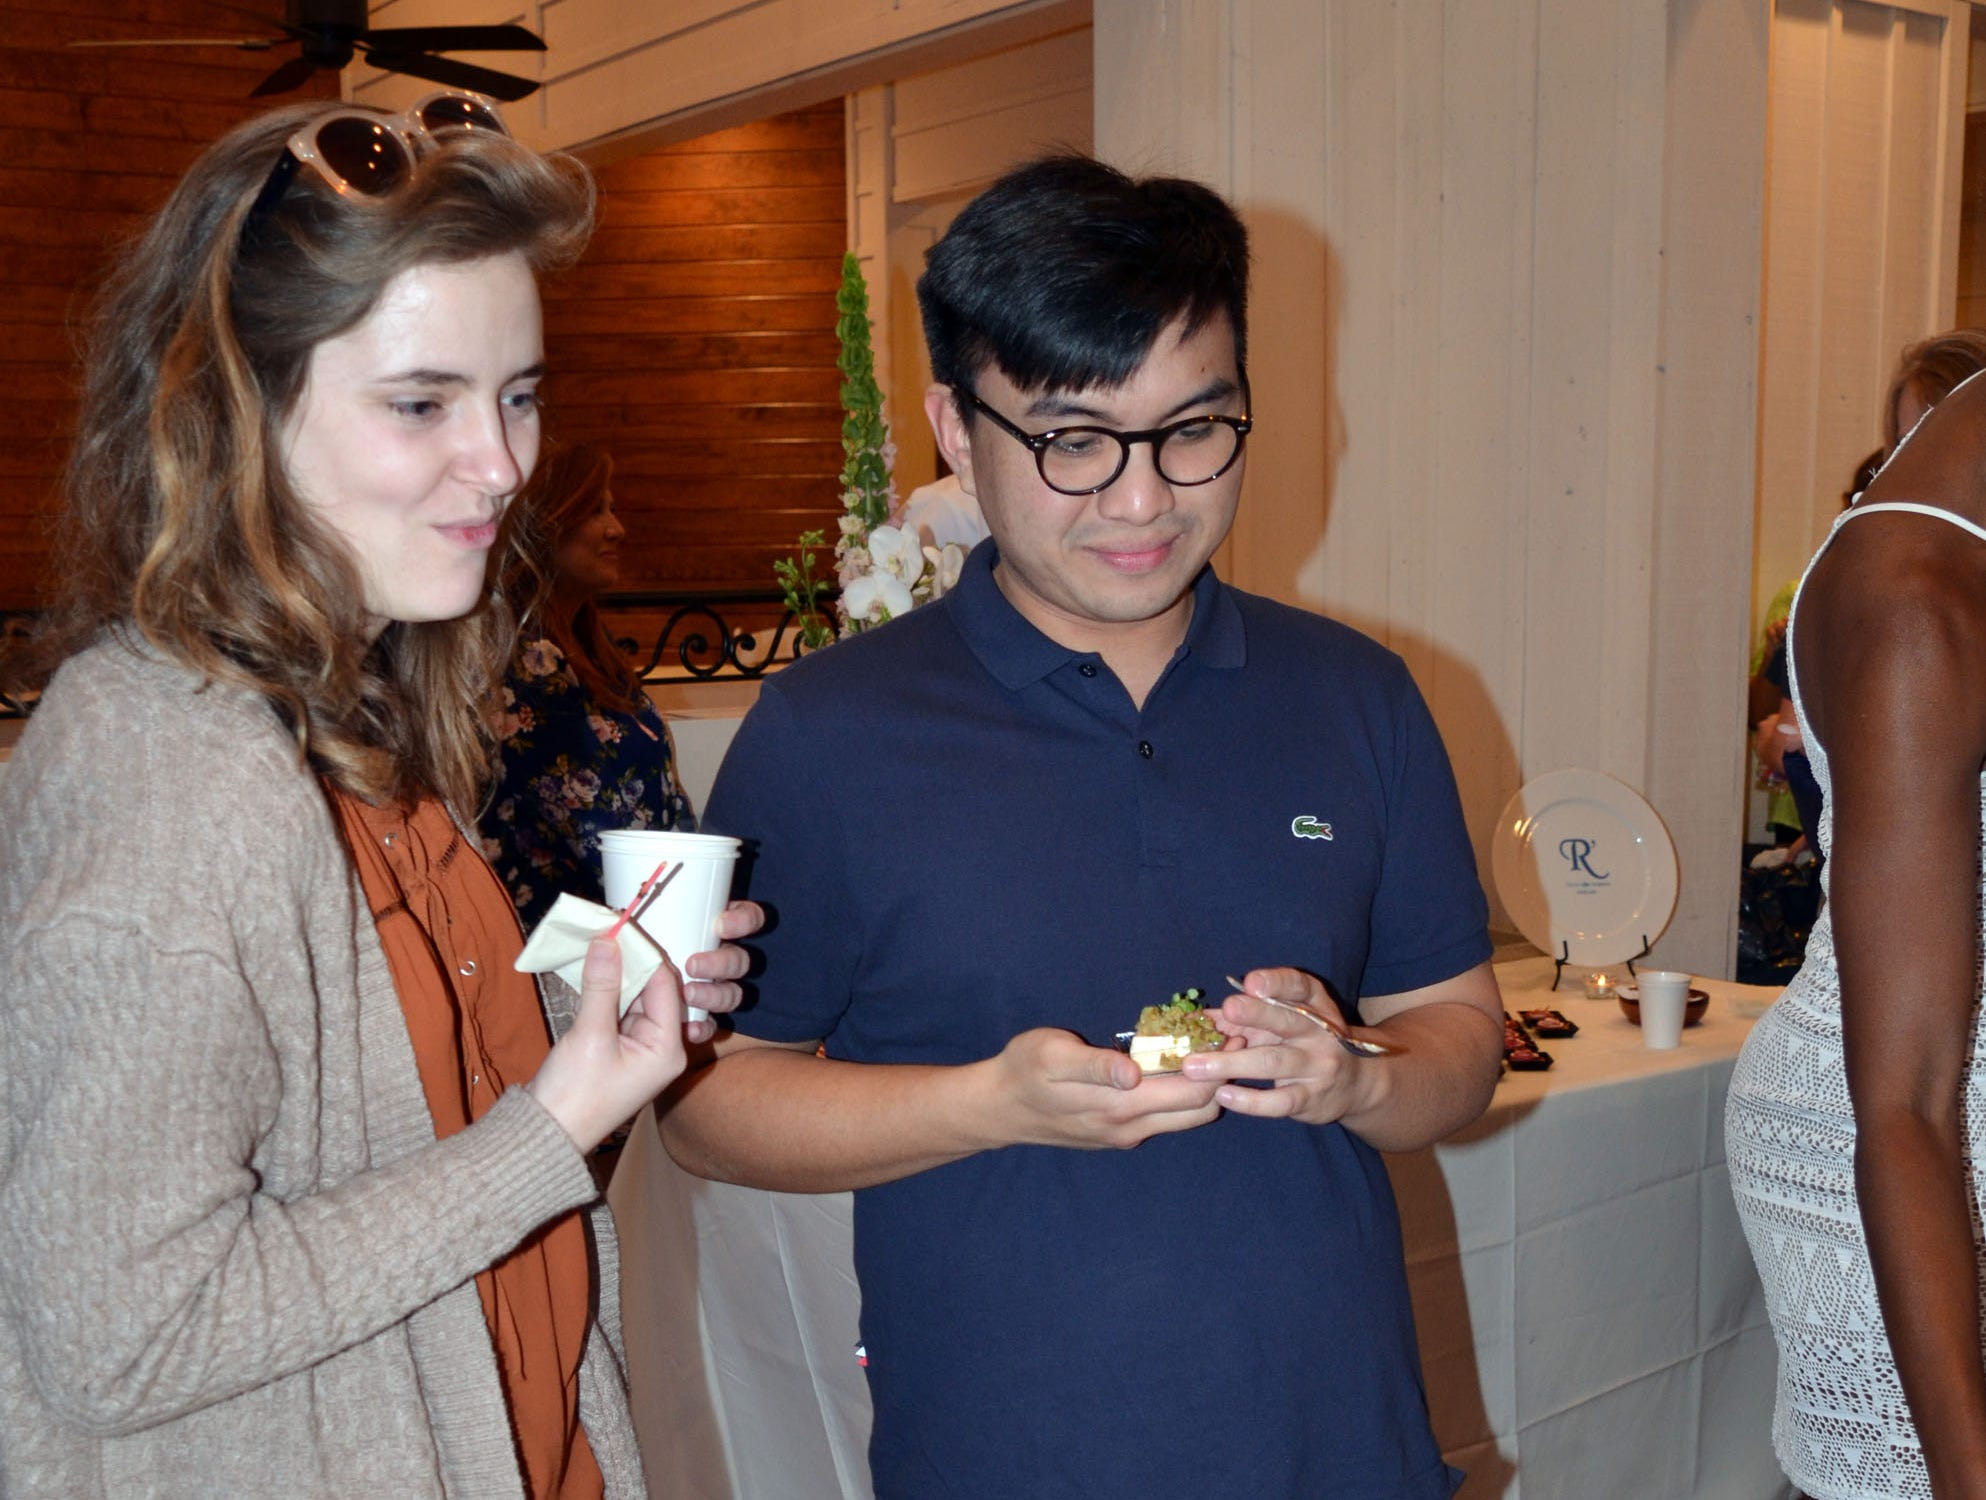 Rylie Byrd, left, of Jackson, and Kevin Drapeza, right, of Jackson, enjoy the butterscotch panna cotta with apple honey and pumpkin seeds prepared by pastry chef Josh Lear of The Noble South in Mobile, Alabama.